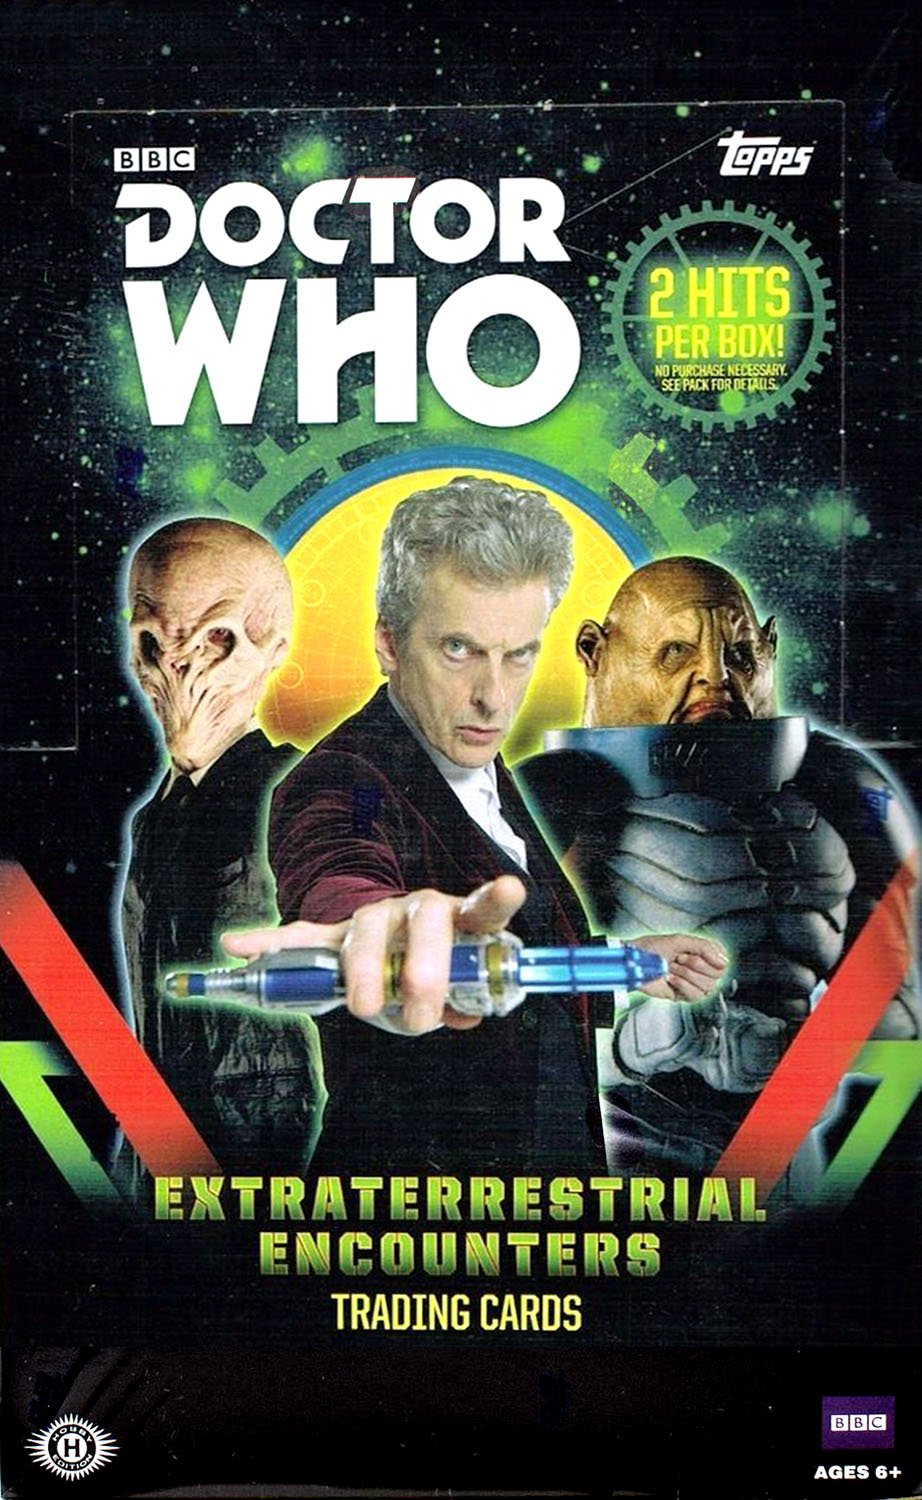 2016 Topps Doctor Who Extraterrestial Encounters Hobby Box | Eastridge Sports Cards